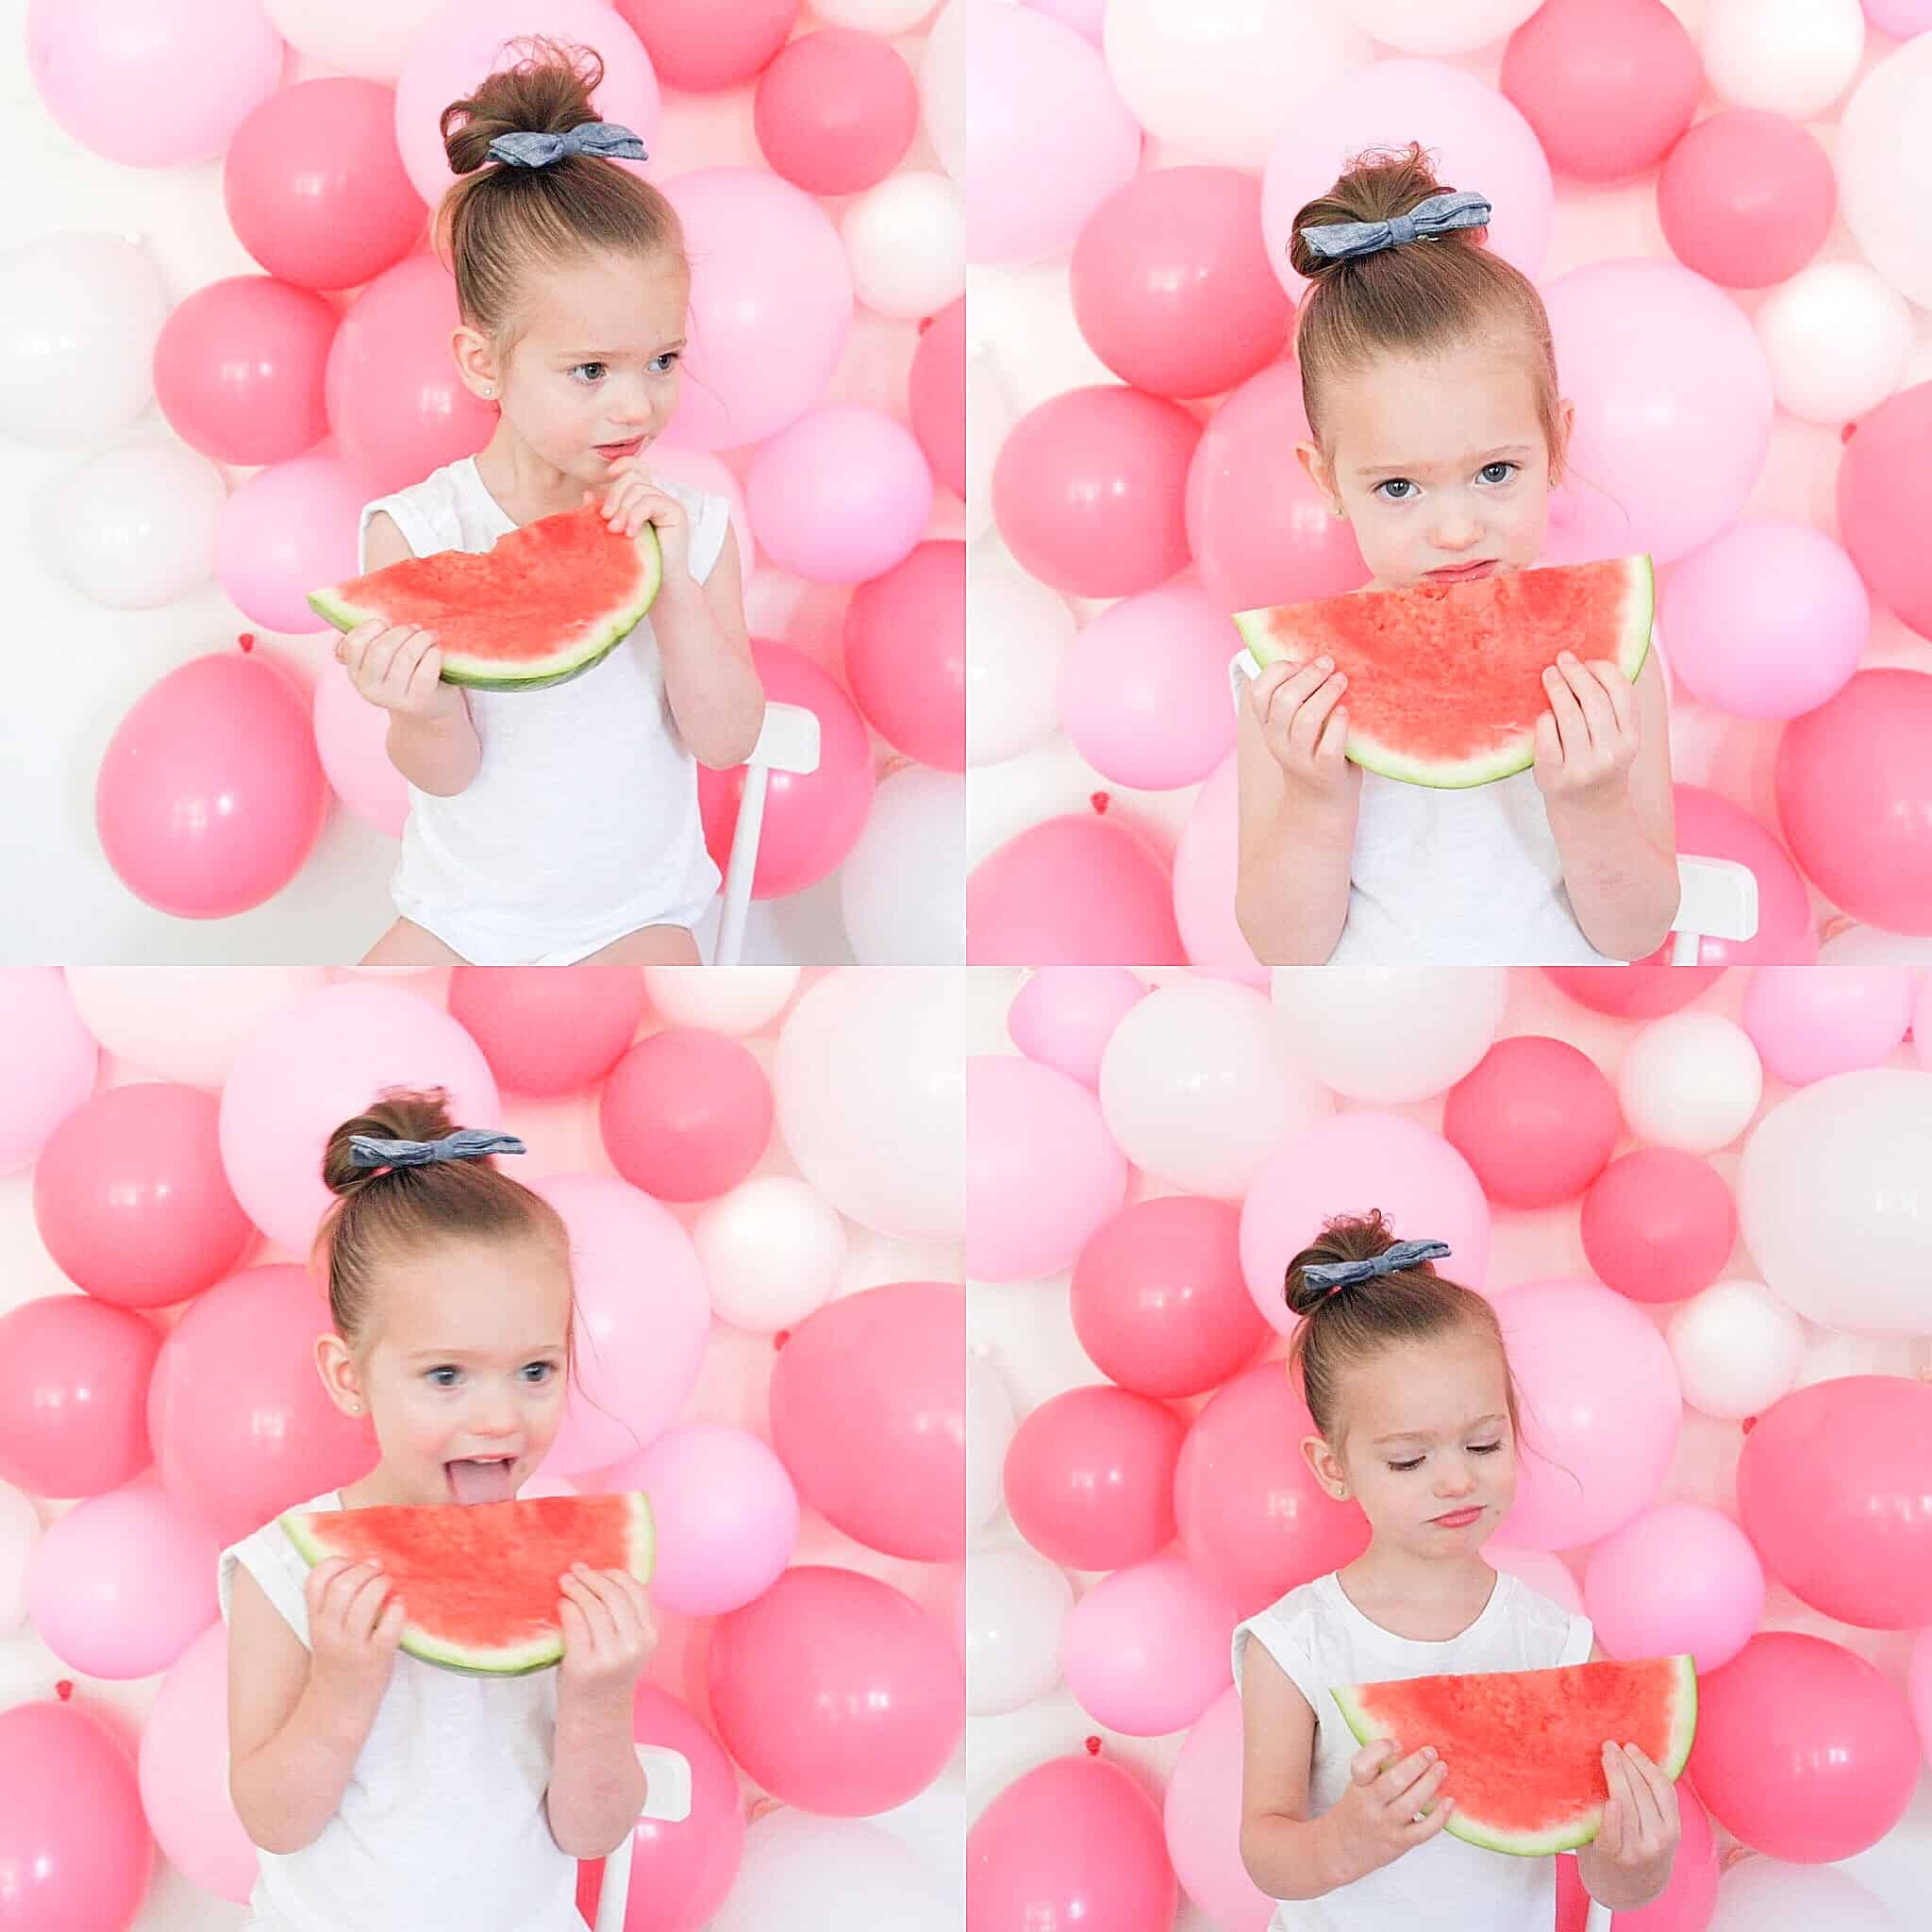 little girl eating watermelon in front of pink DIY balloon wall